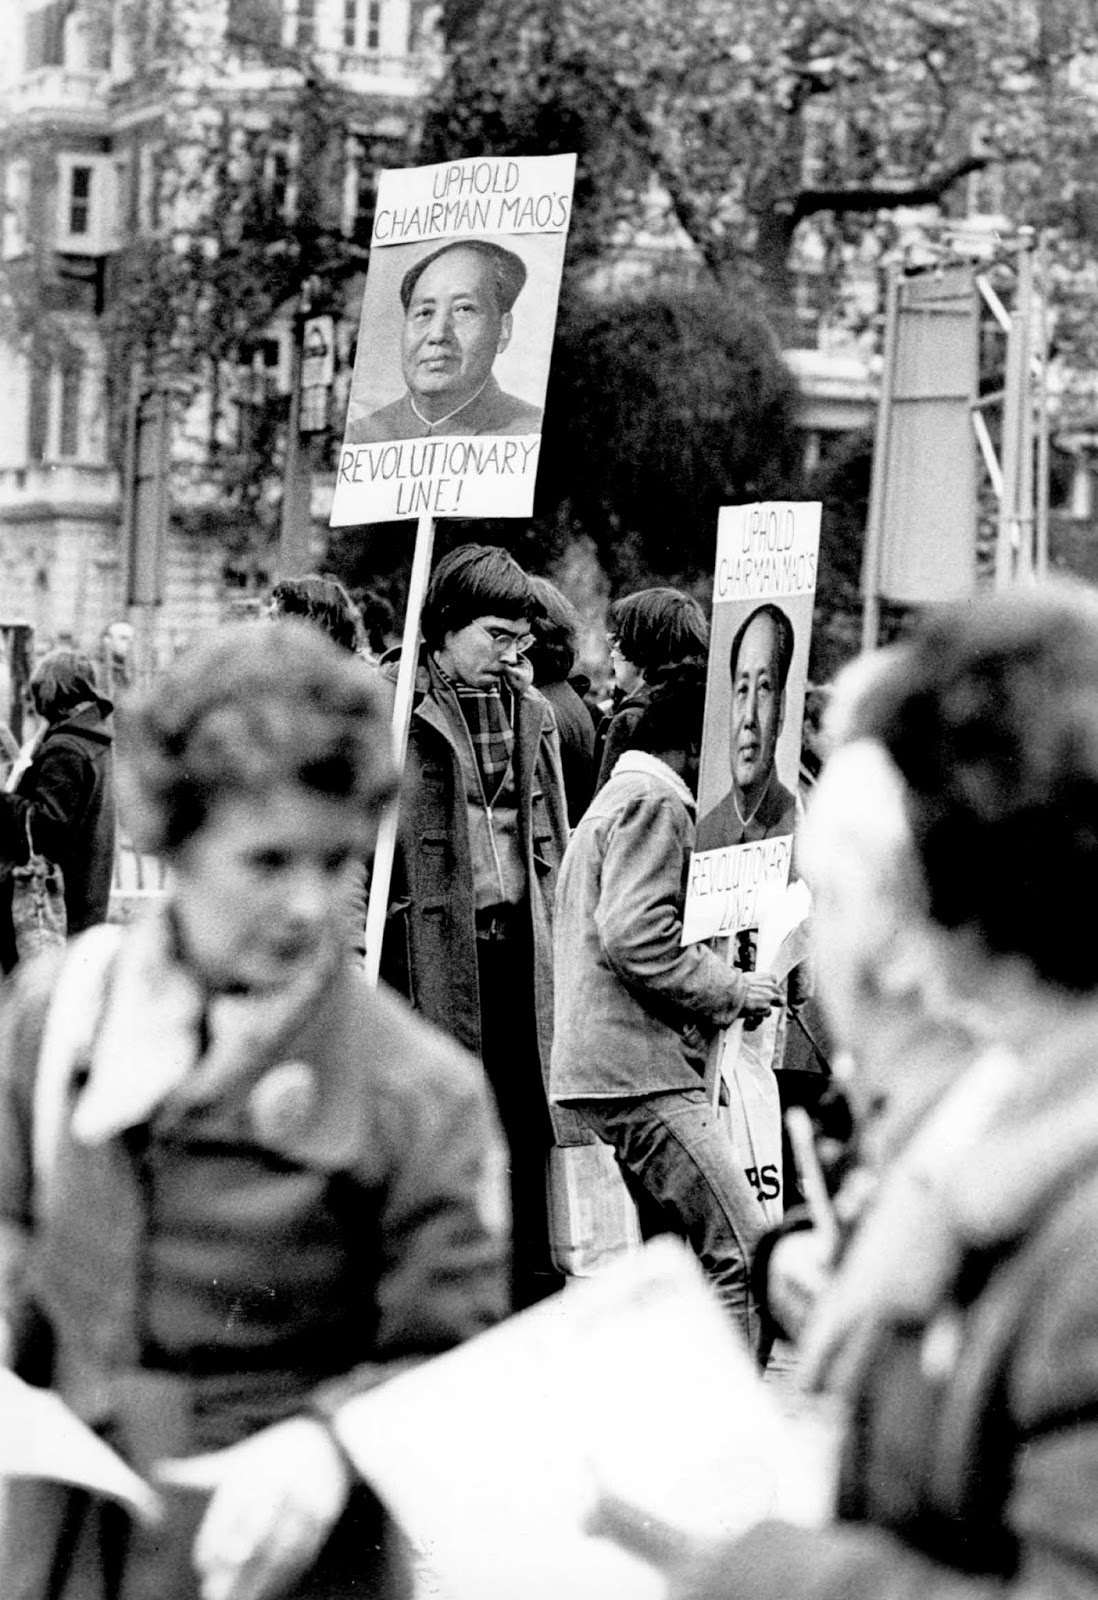 Demonstrators holding posters with pictures of Chairman Mao Tse Tung and the slogan 'Uphold Chairman Mao's Revolutionary Line'. 1976.